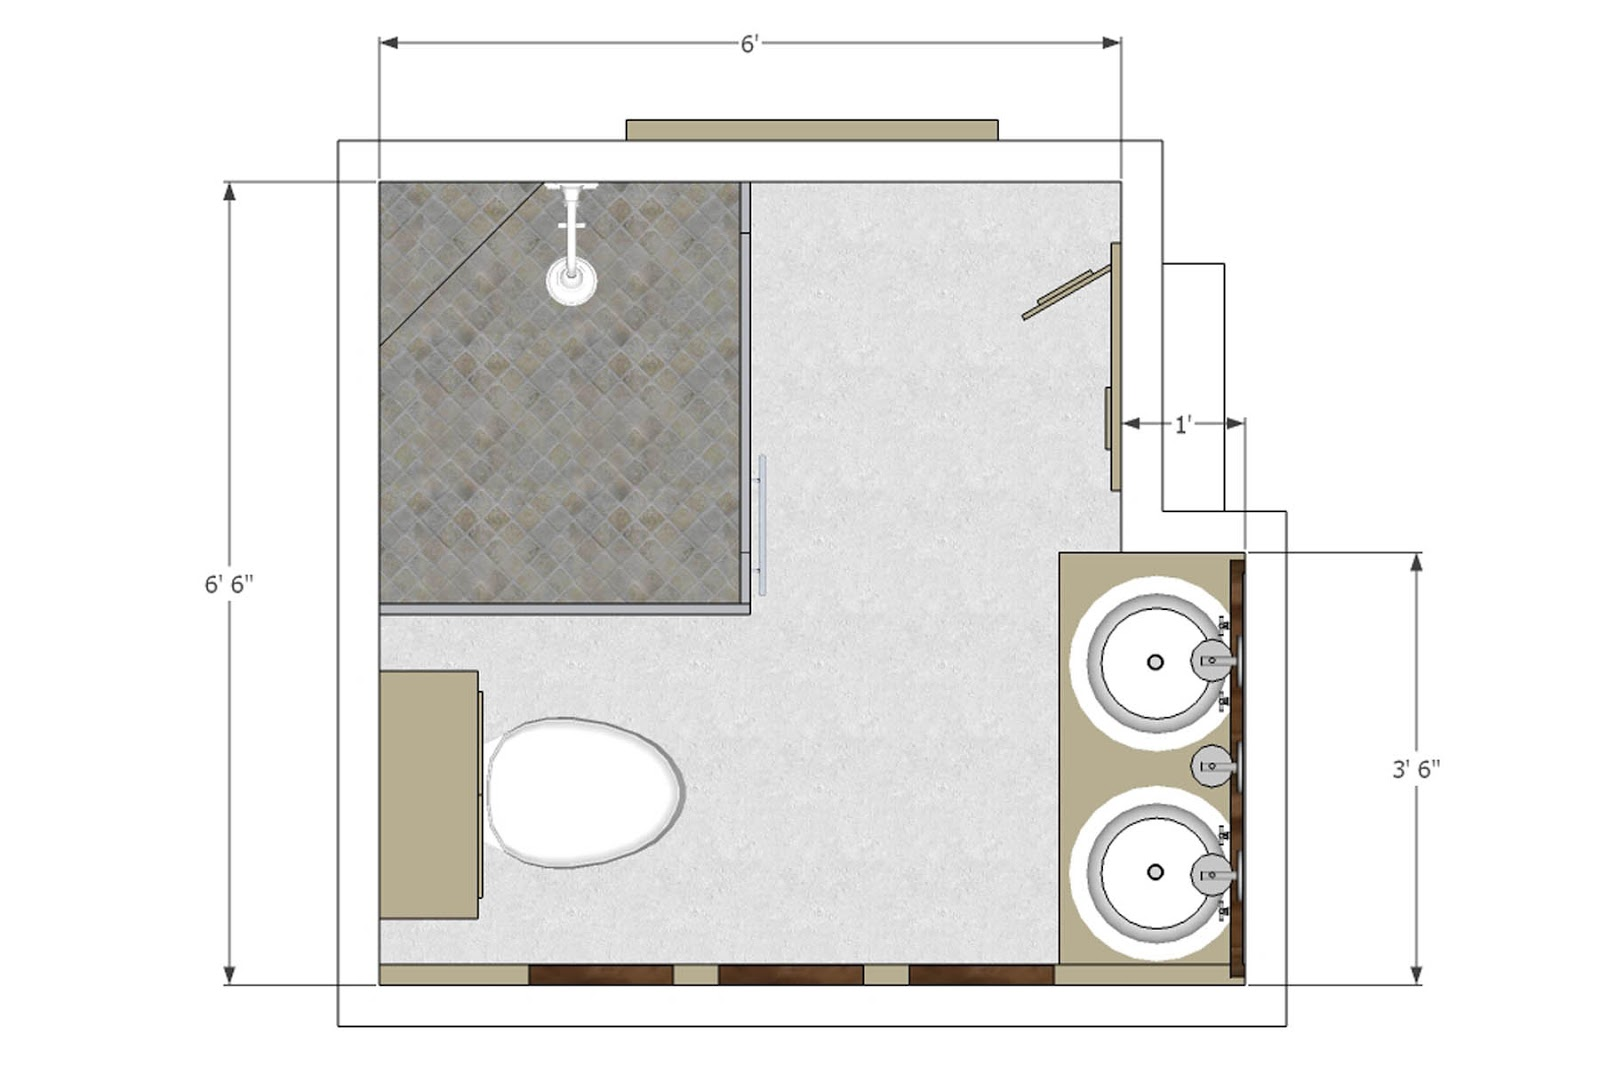 Foundation dezin decor bathroom plans views for Bathroom layout